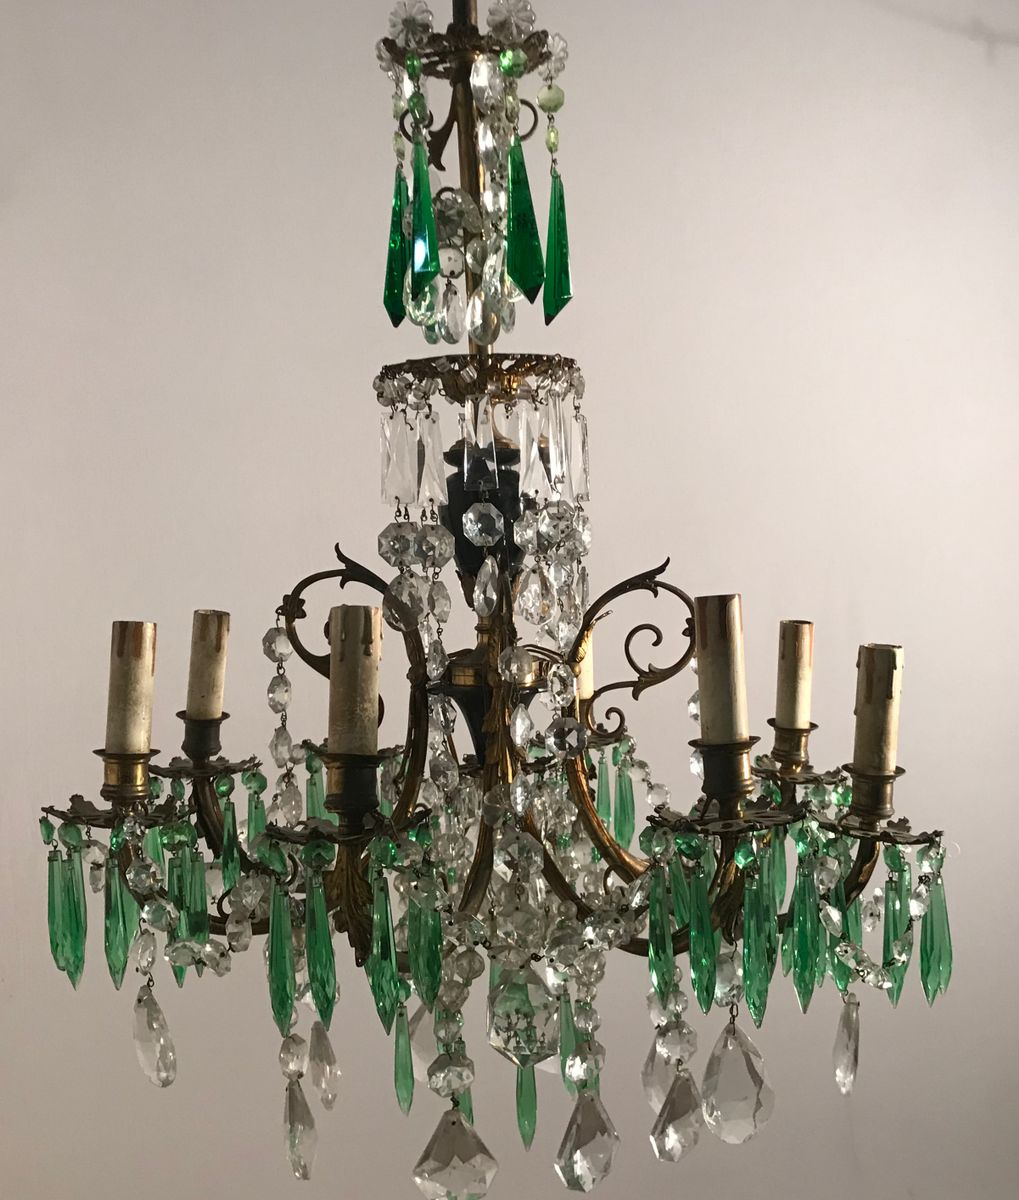 Vintage Crystal Chandelier With Green Pendants